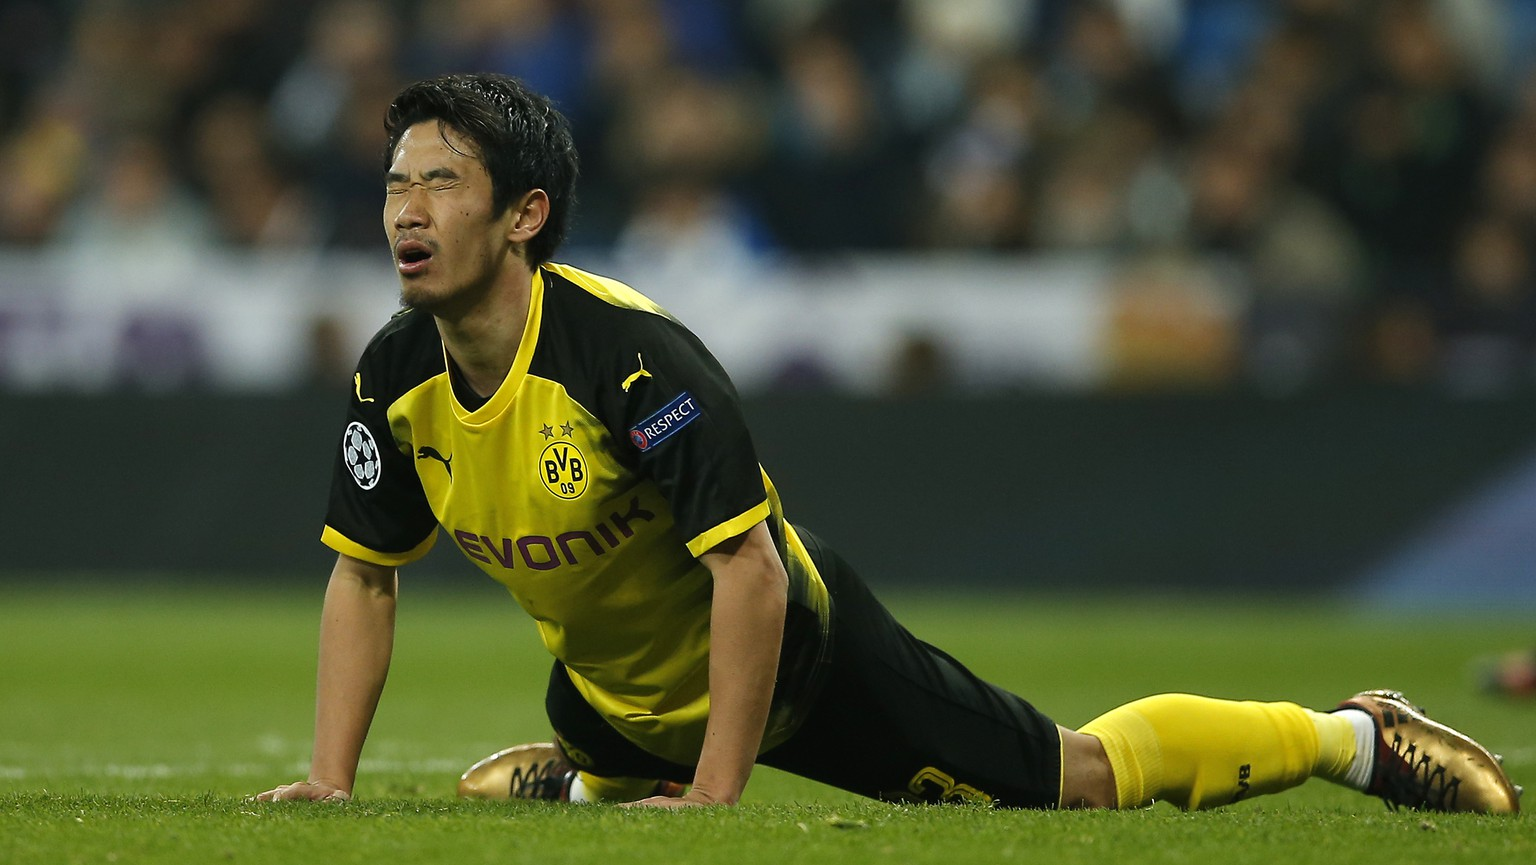 Dortmund's Shinji Kagawa reacts disappointed during the Champions League Group H soccer match between Real Madrid and Borussia Dortmund at the Santiago Bernabeu stadium in Madrid, Spain, Wednesday, Dec. 6, 2017. (AP Photo/Paul White)